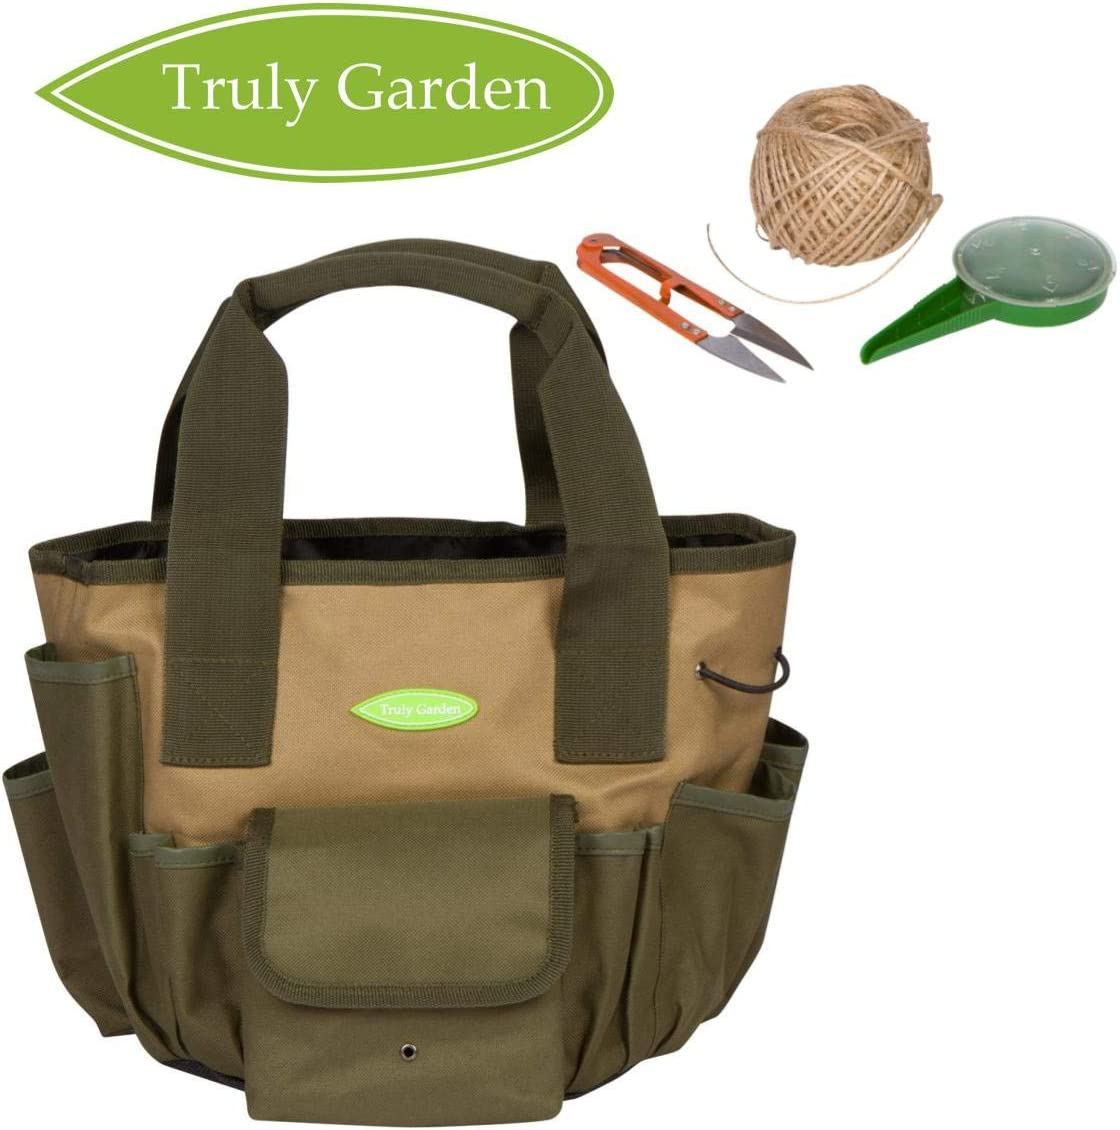 Truly Garden Garden Tote and 2 Gallon Bucket Organizer. The perfect Gardening Gift. This organizer comes with twine, a seed dispenser, and scissors.